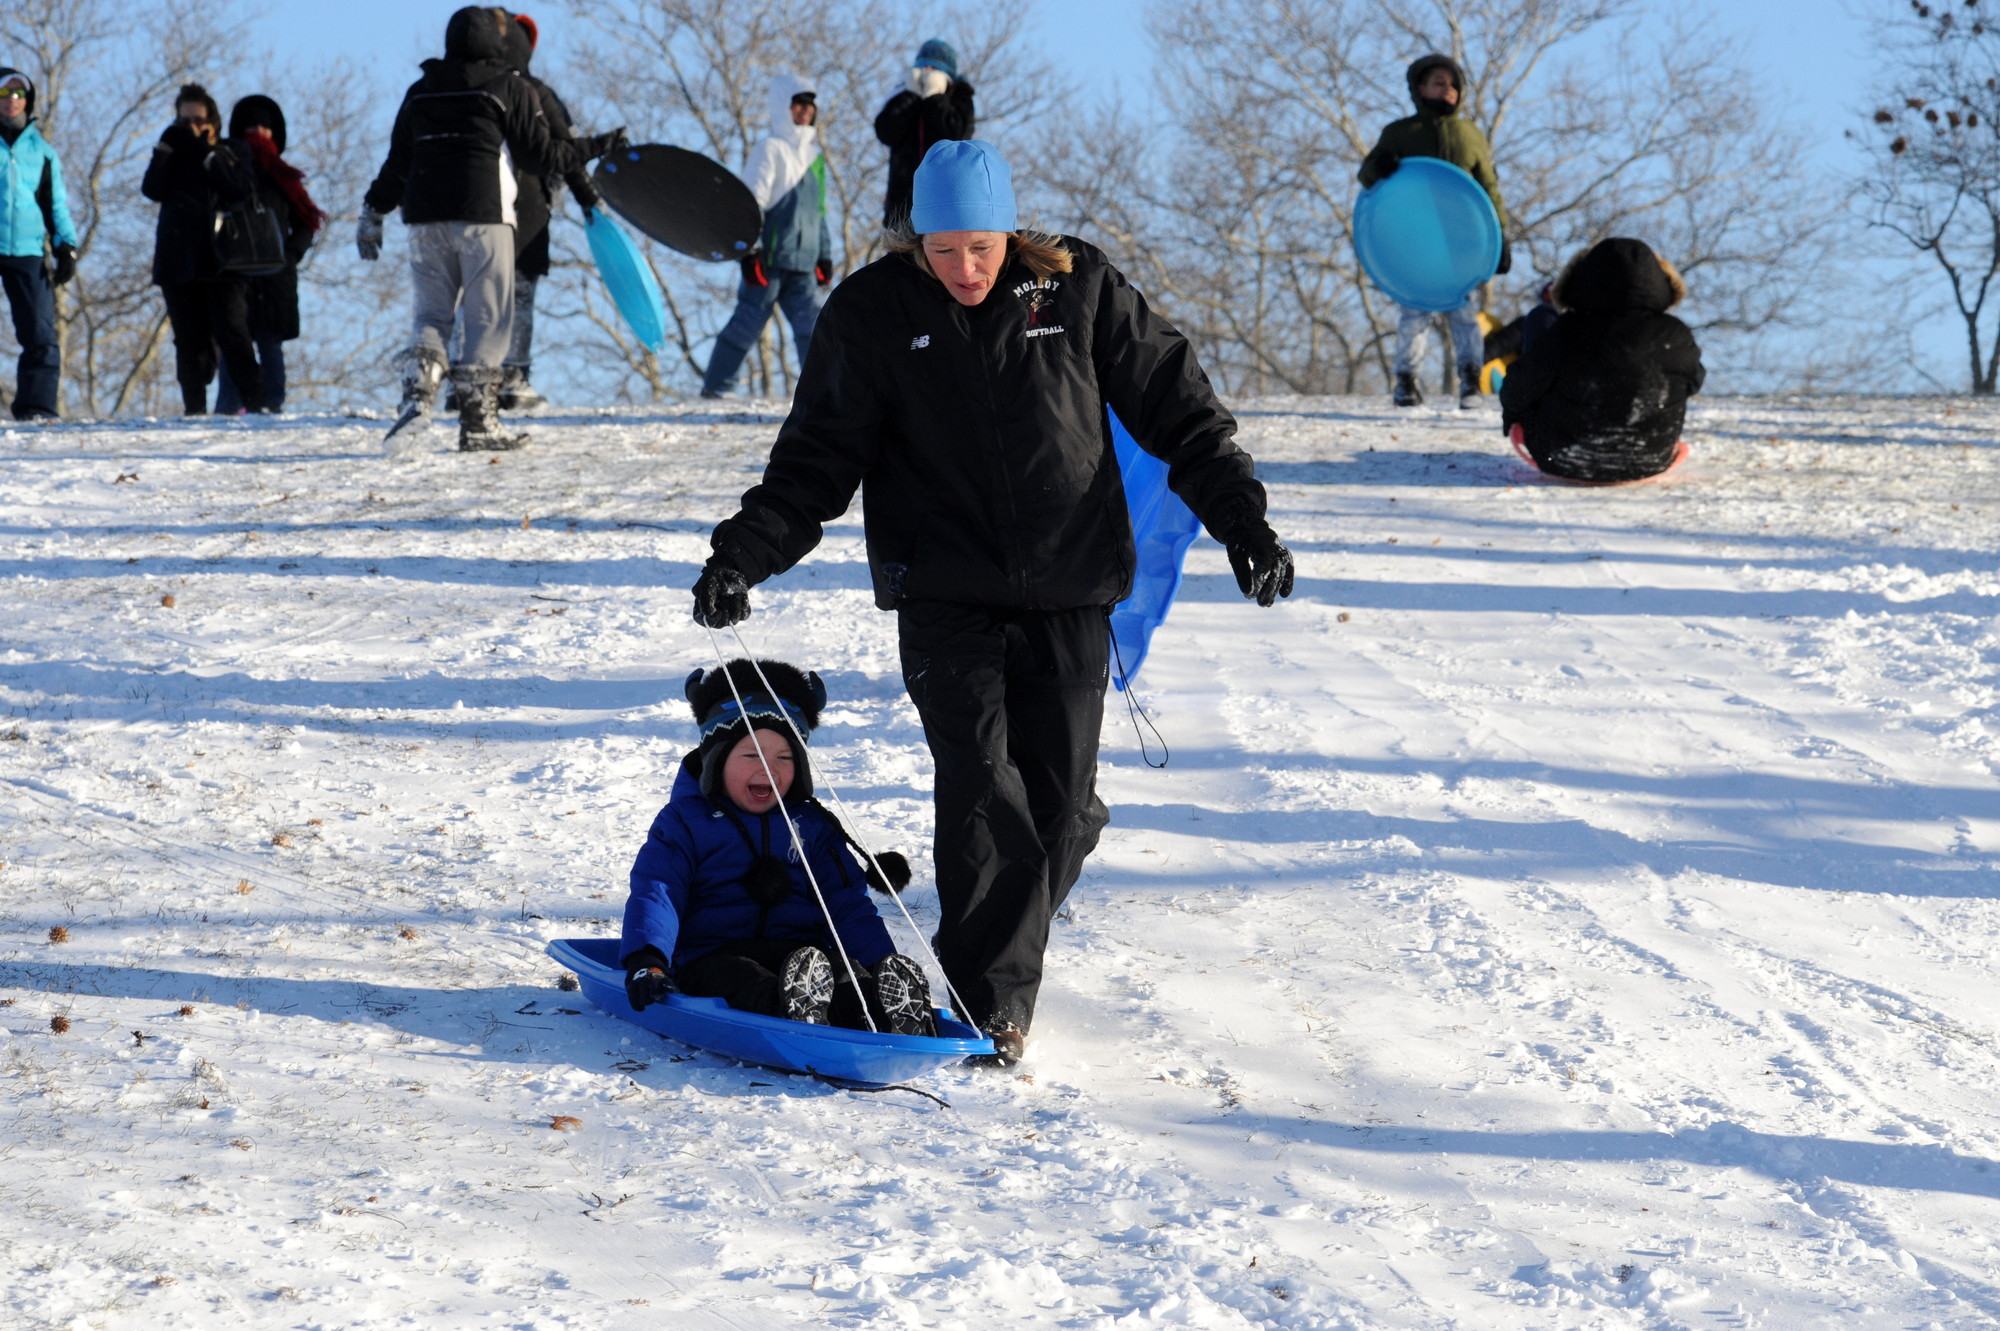 Susan Lyke guided her son Jack, 4, down the hill.